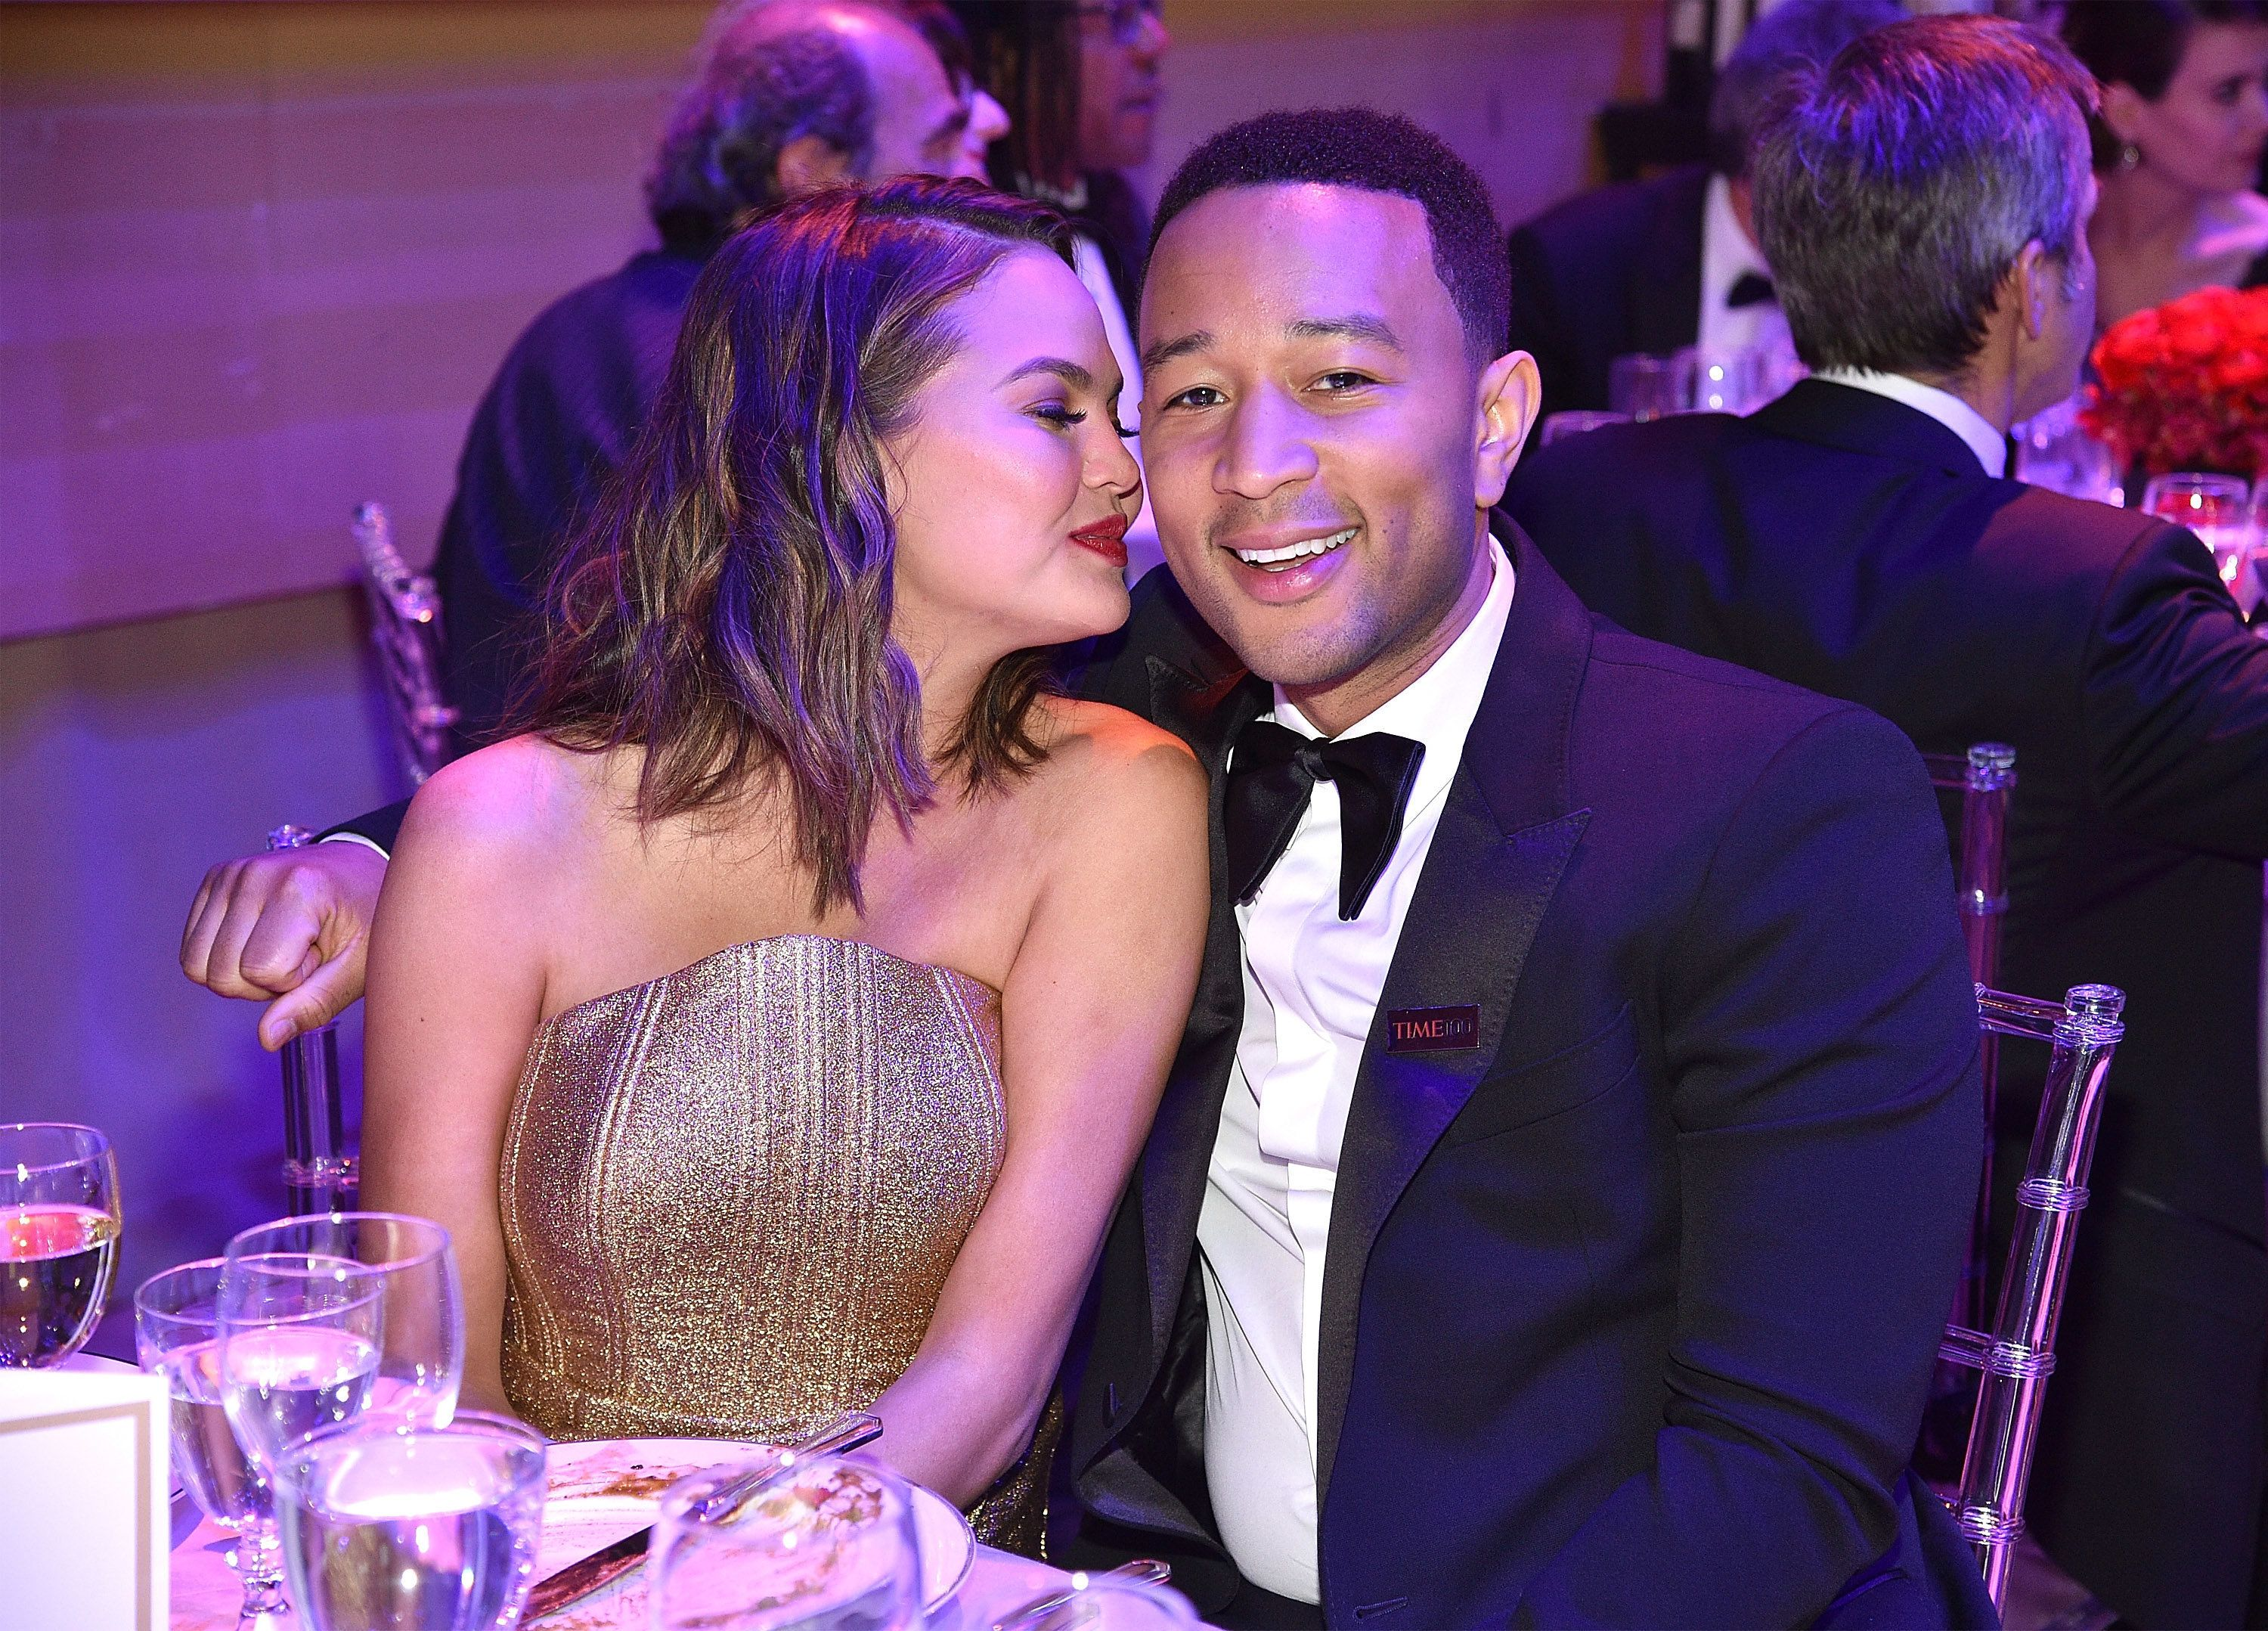 John Legend with his wife Chrissy Teigen at the Time 100 Gala on April 25, 2017.